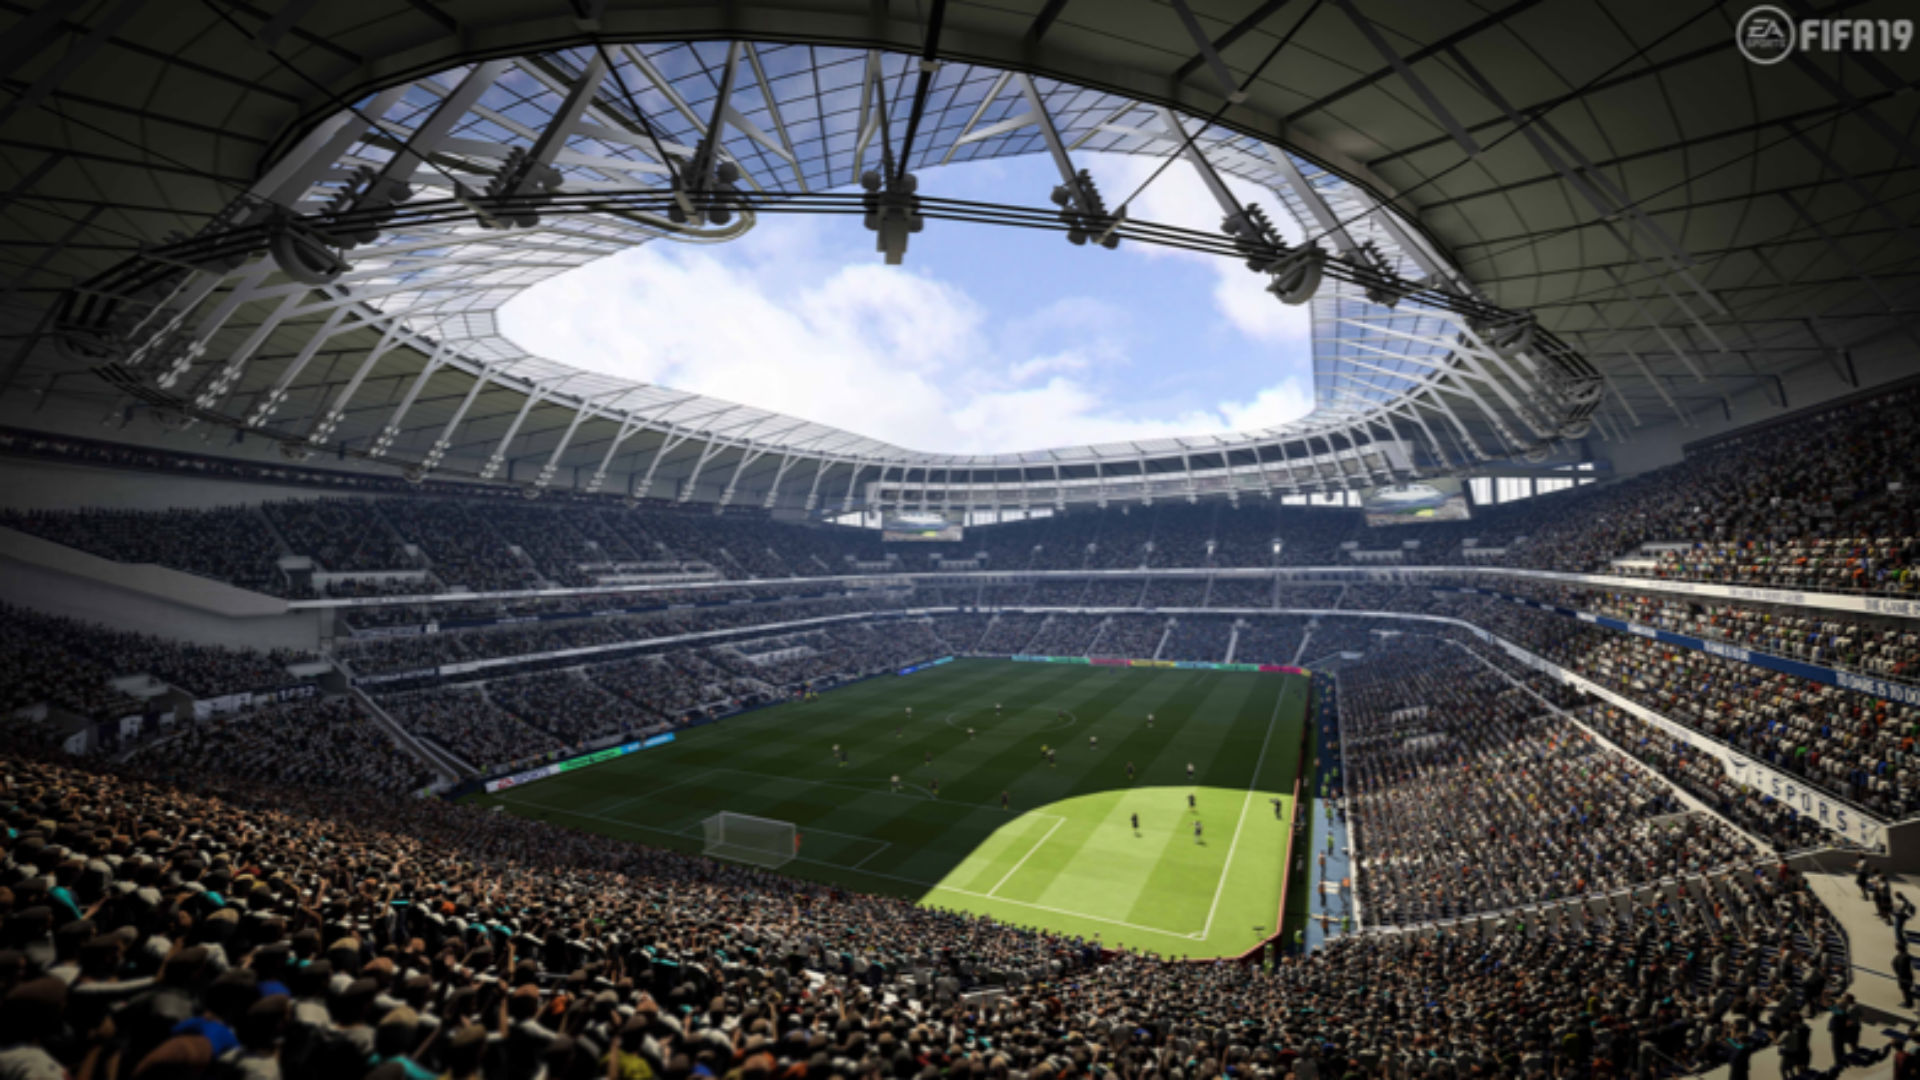 FIFA 19 stadium list: All 102 grounds on Xbox One and PS4